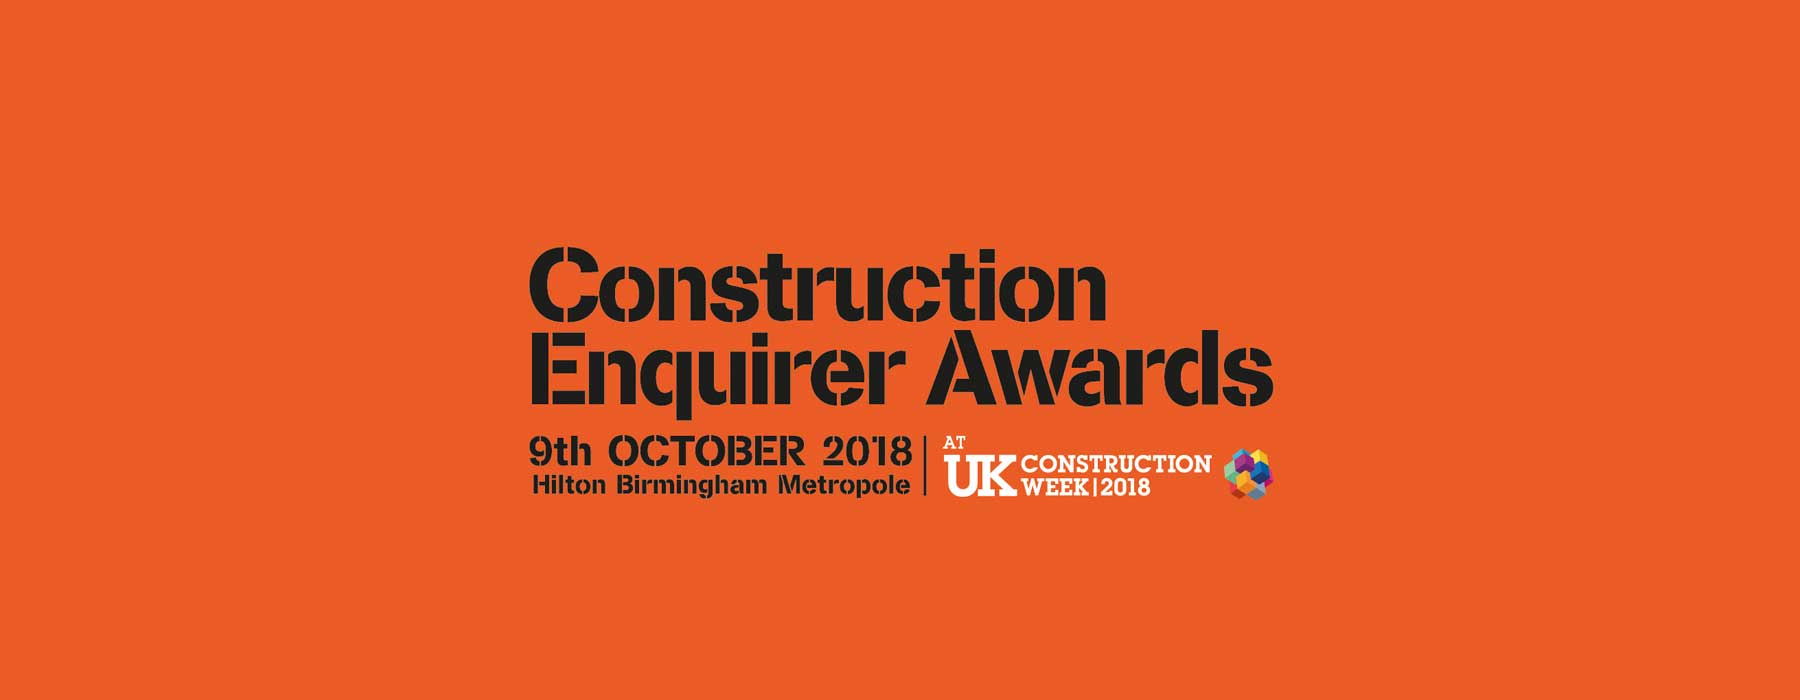 Construction Enquirer Awards Logo